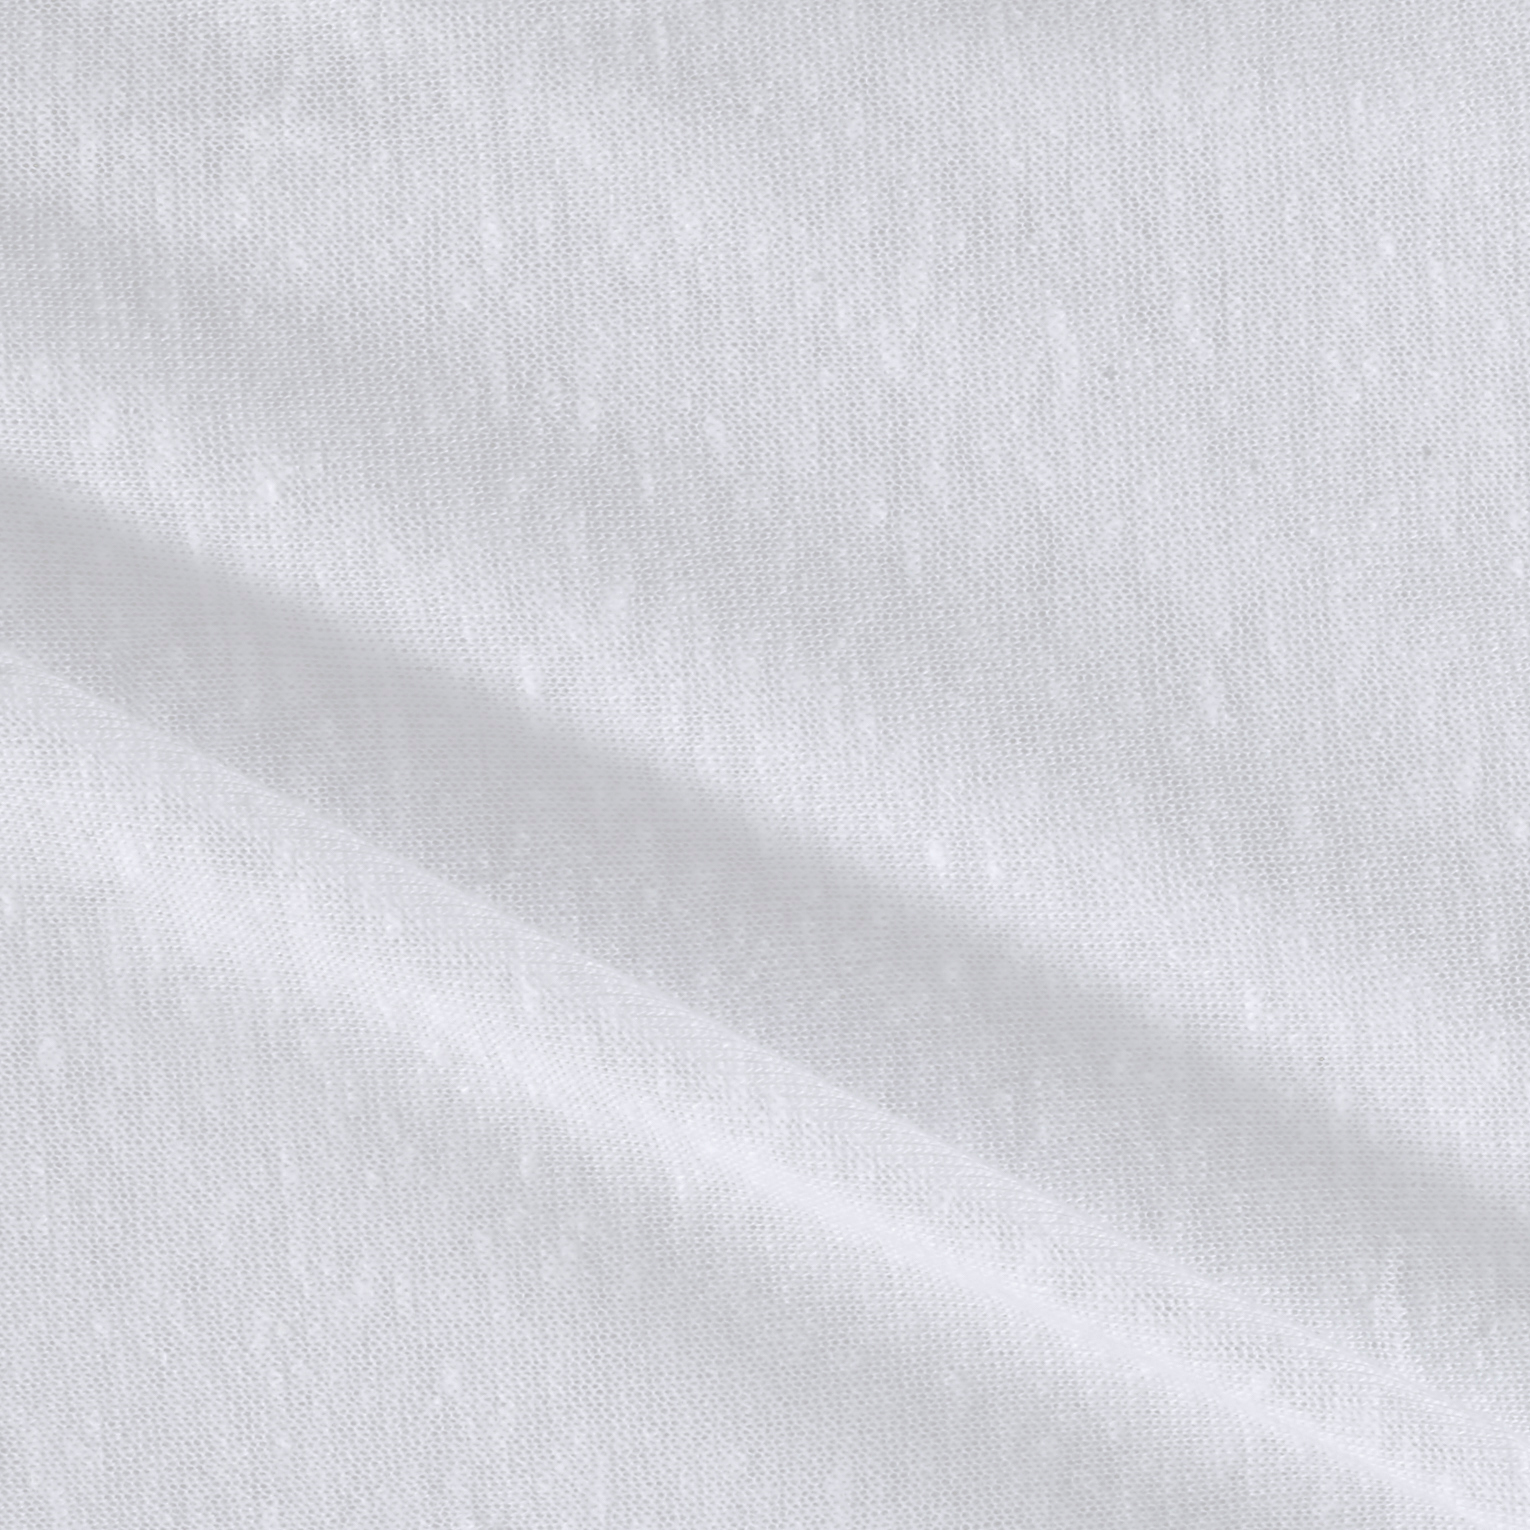 Tri Blend Jersey Knit White Fabric by Stardom Specialty in USA